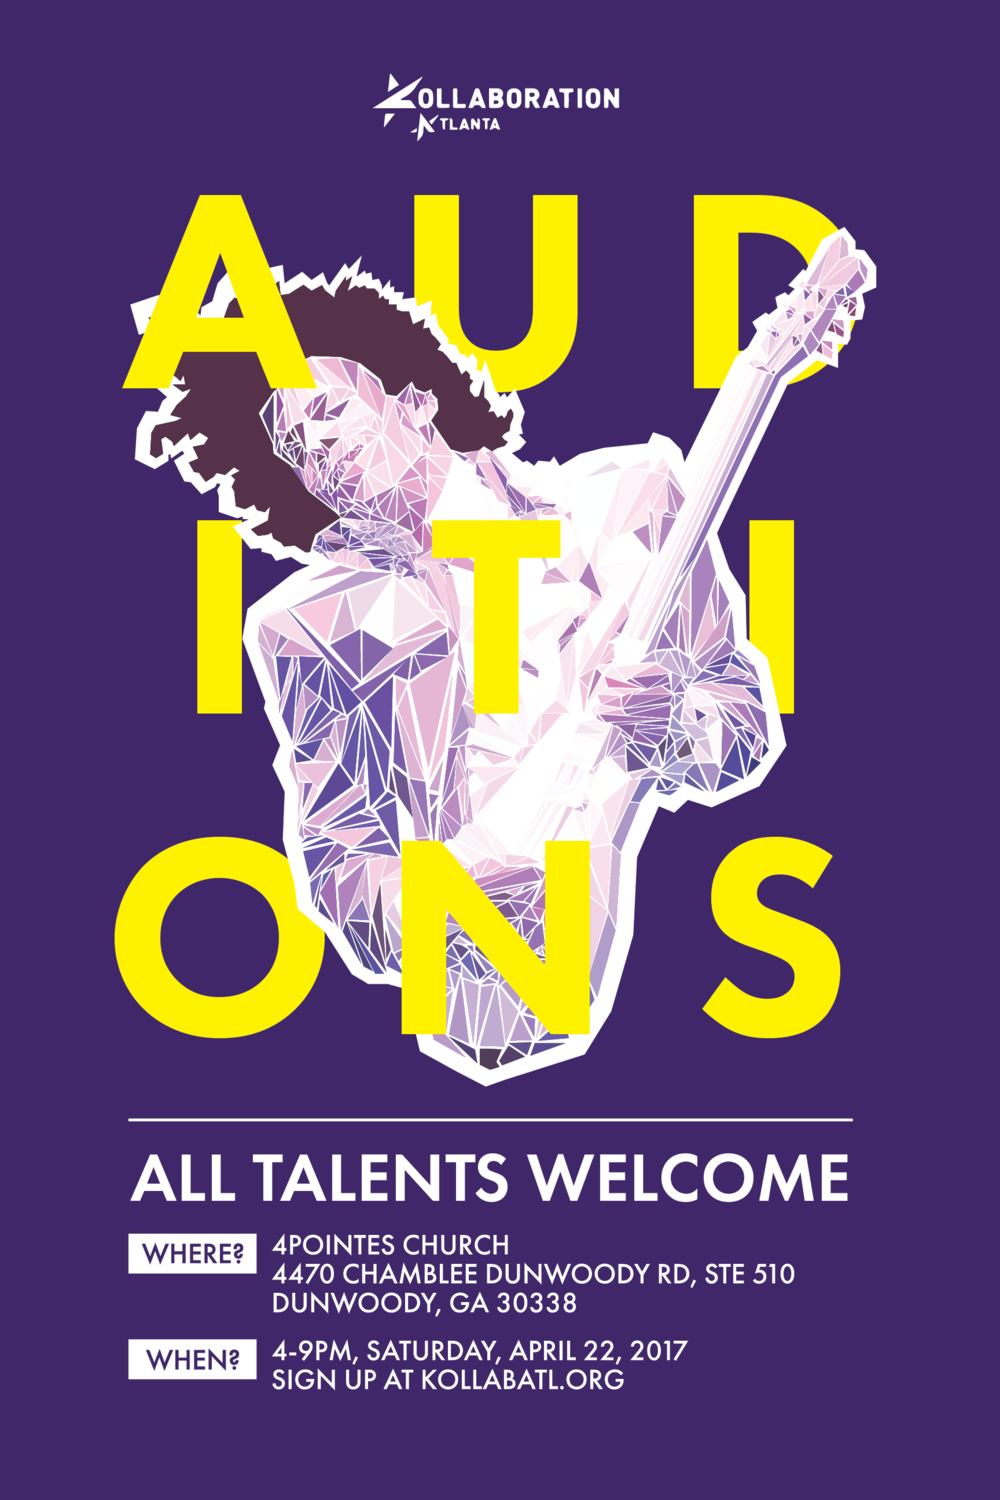 Kollaboration Auditions - To promote an annual talent show. Color scheme chosen based on Kollaboration's existing brand.